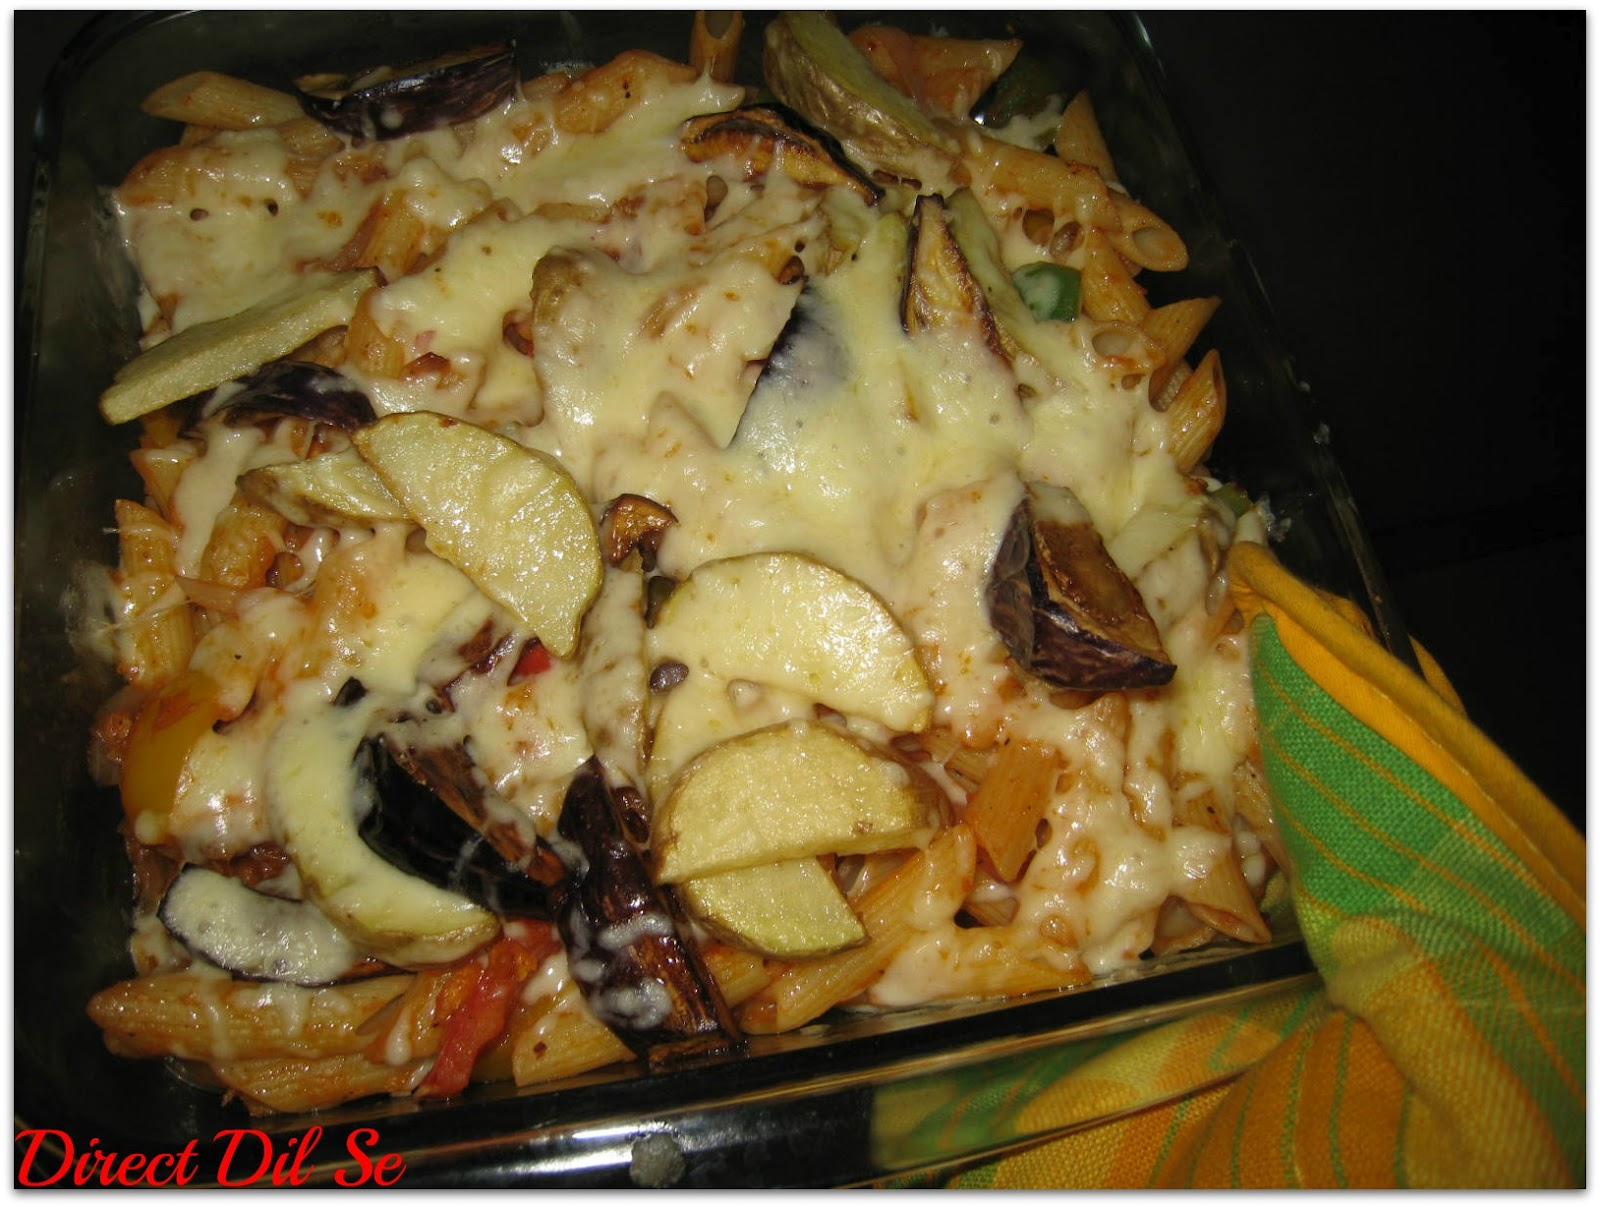 Direct Dil Se...: Baked Penne with fried Potato & Aurbugines